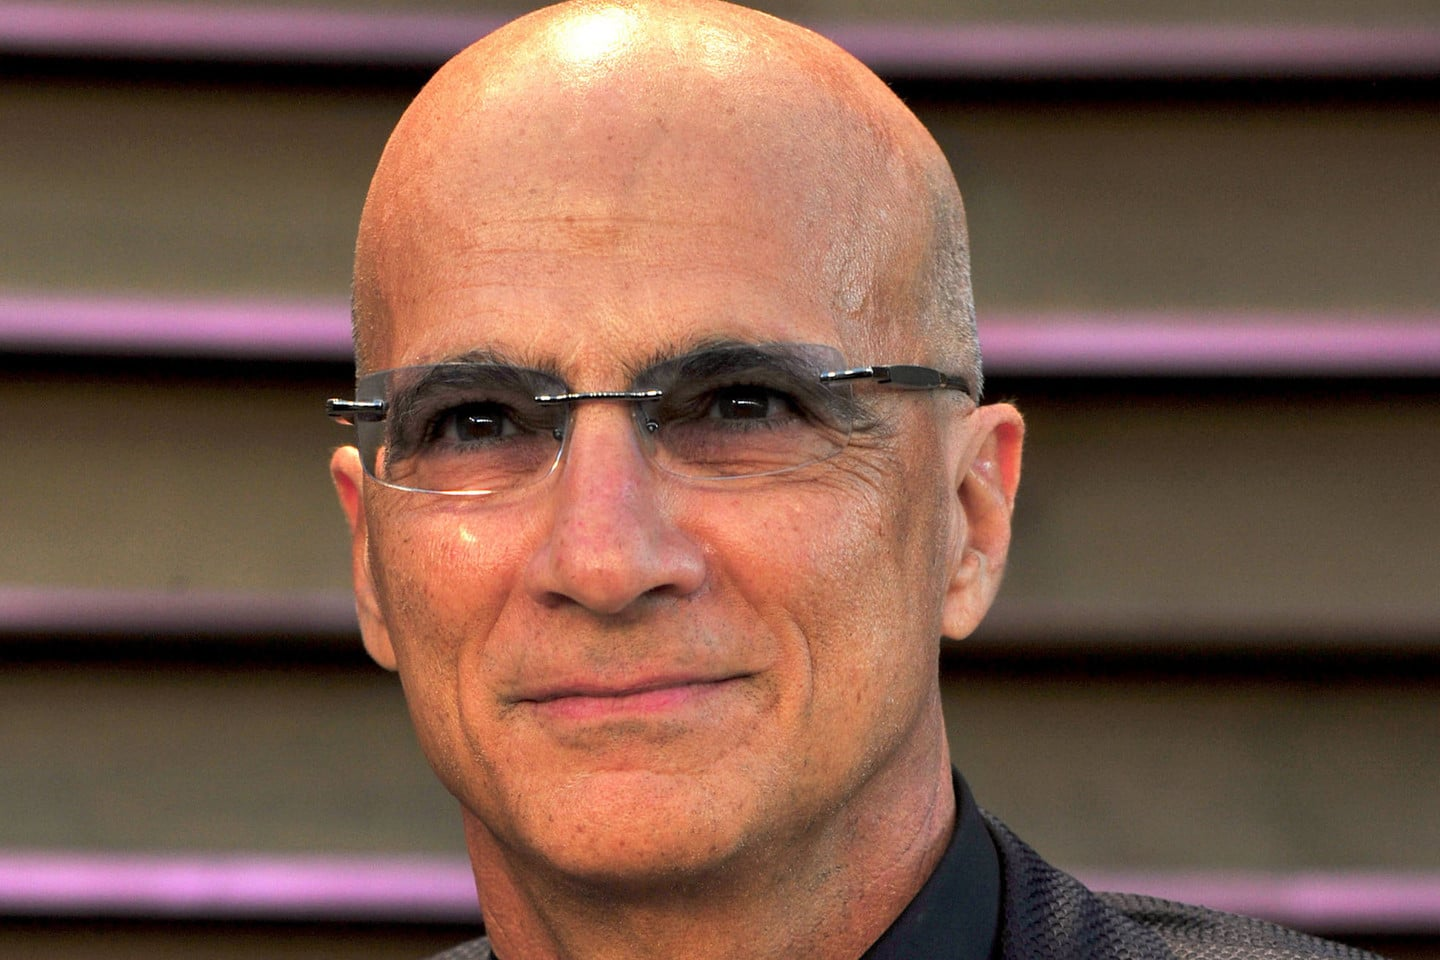 Music mogul Jimmy Iovine to leave Apple Music